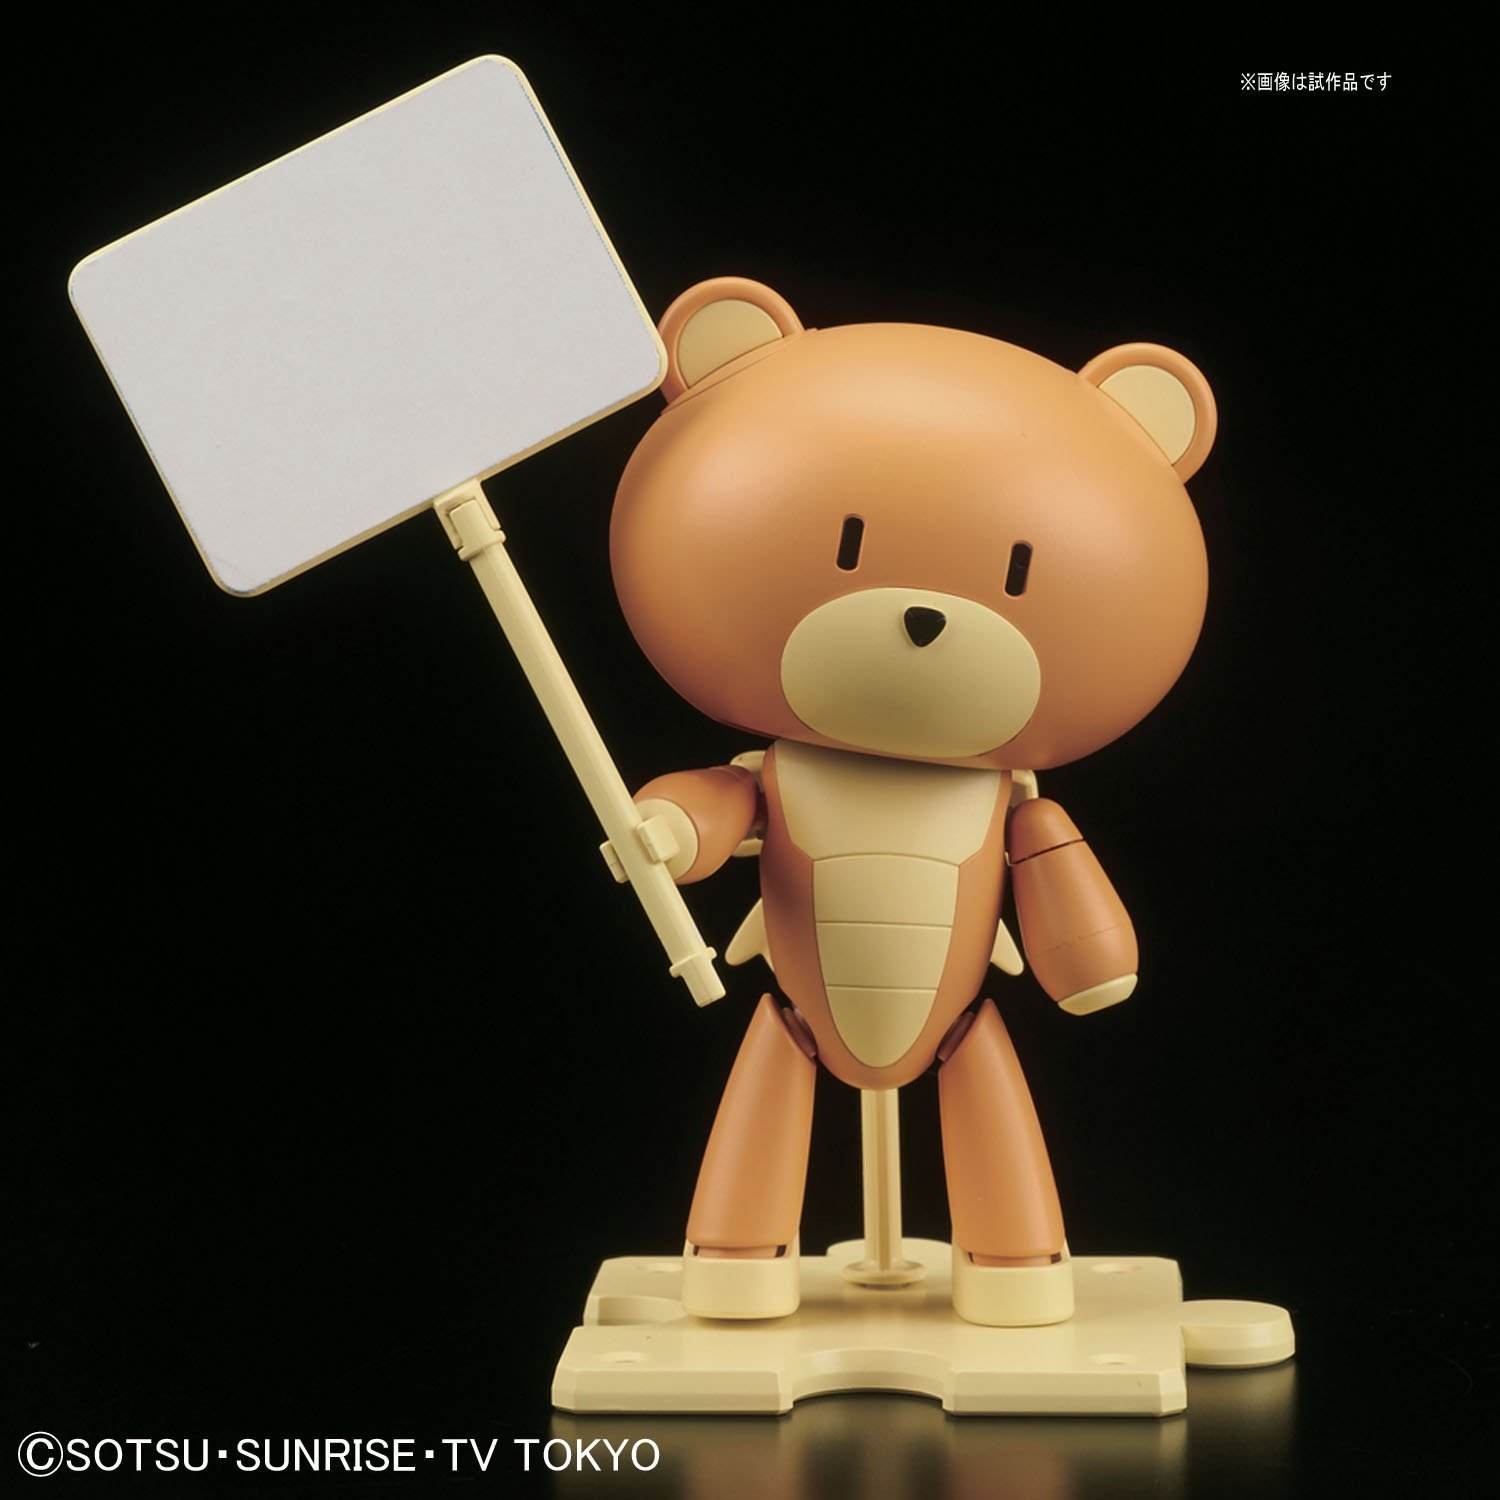 HGPG 1/144 Petit'gguy (Rusty Orange) - Model Kit image